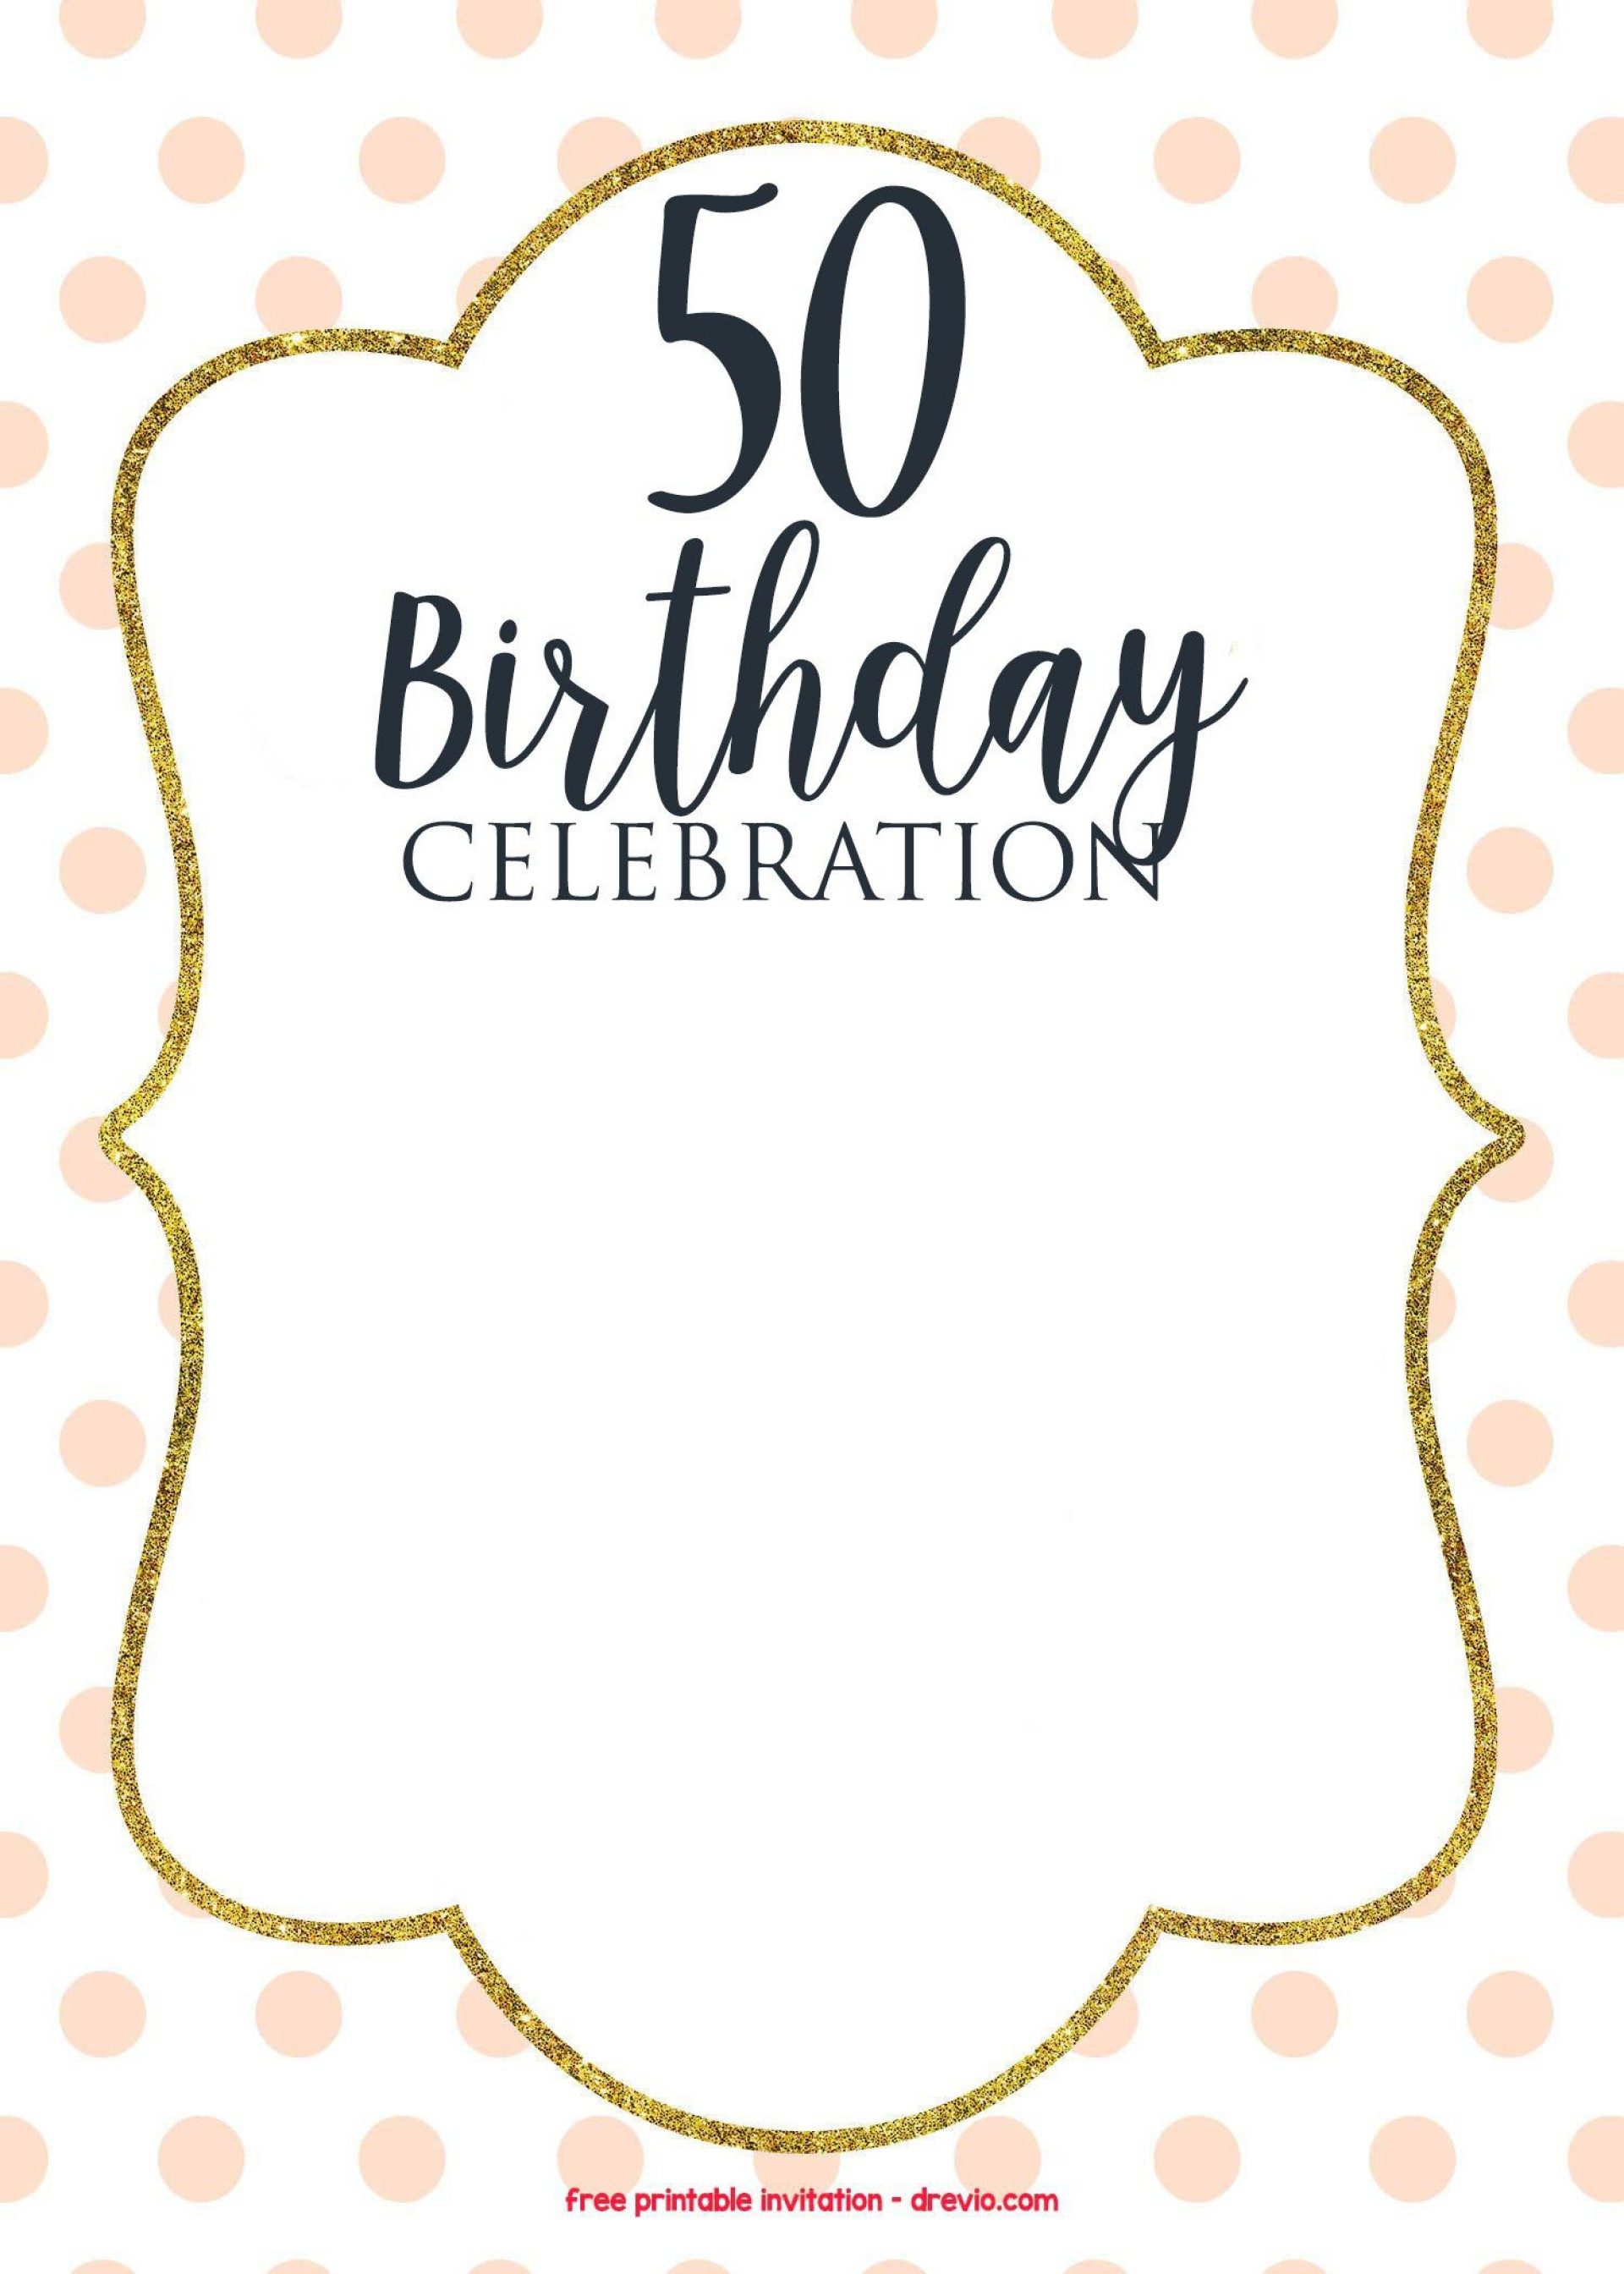 009 Imposing 50th Birthday Invitation Template Picture  Vector Free For Him1920